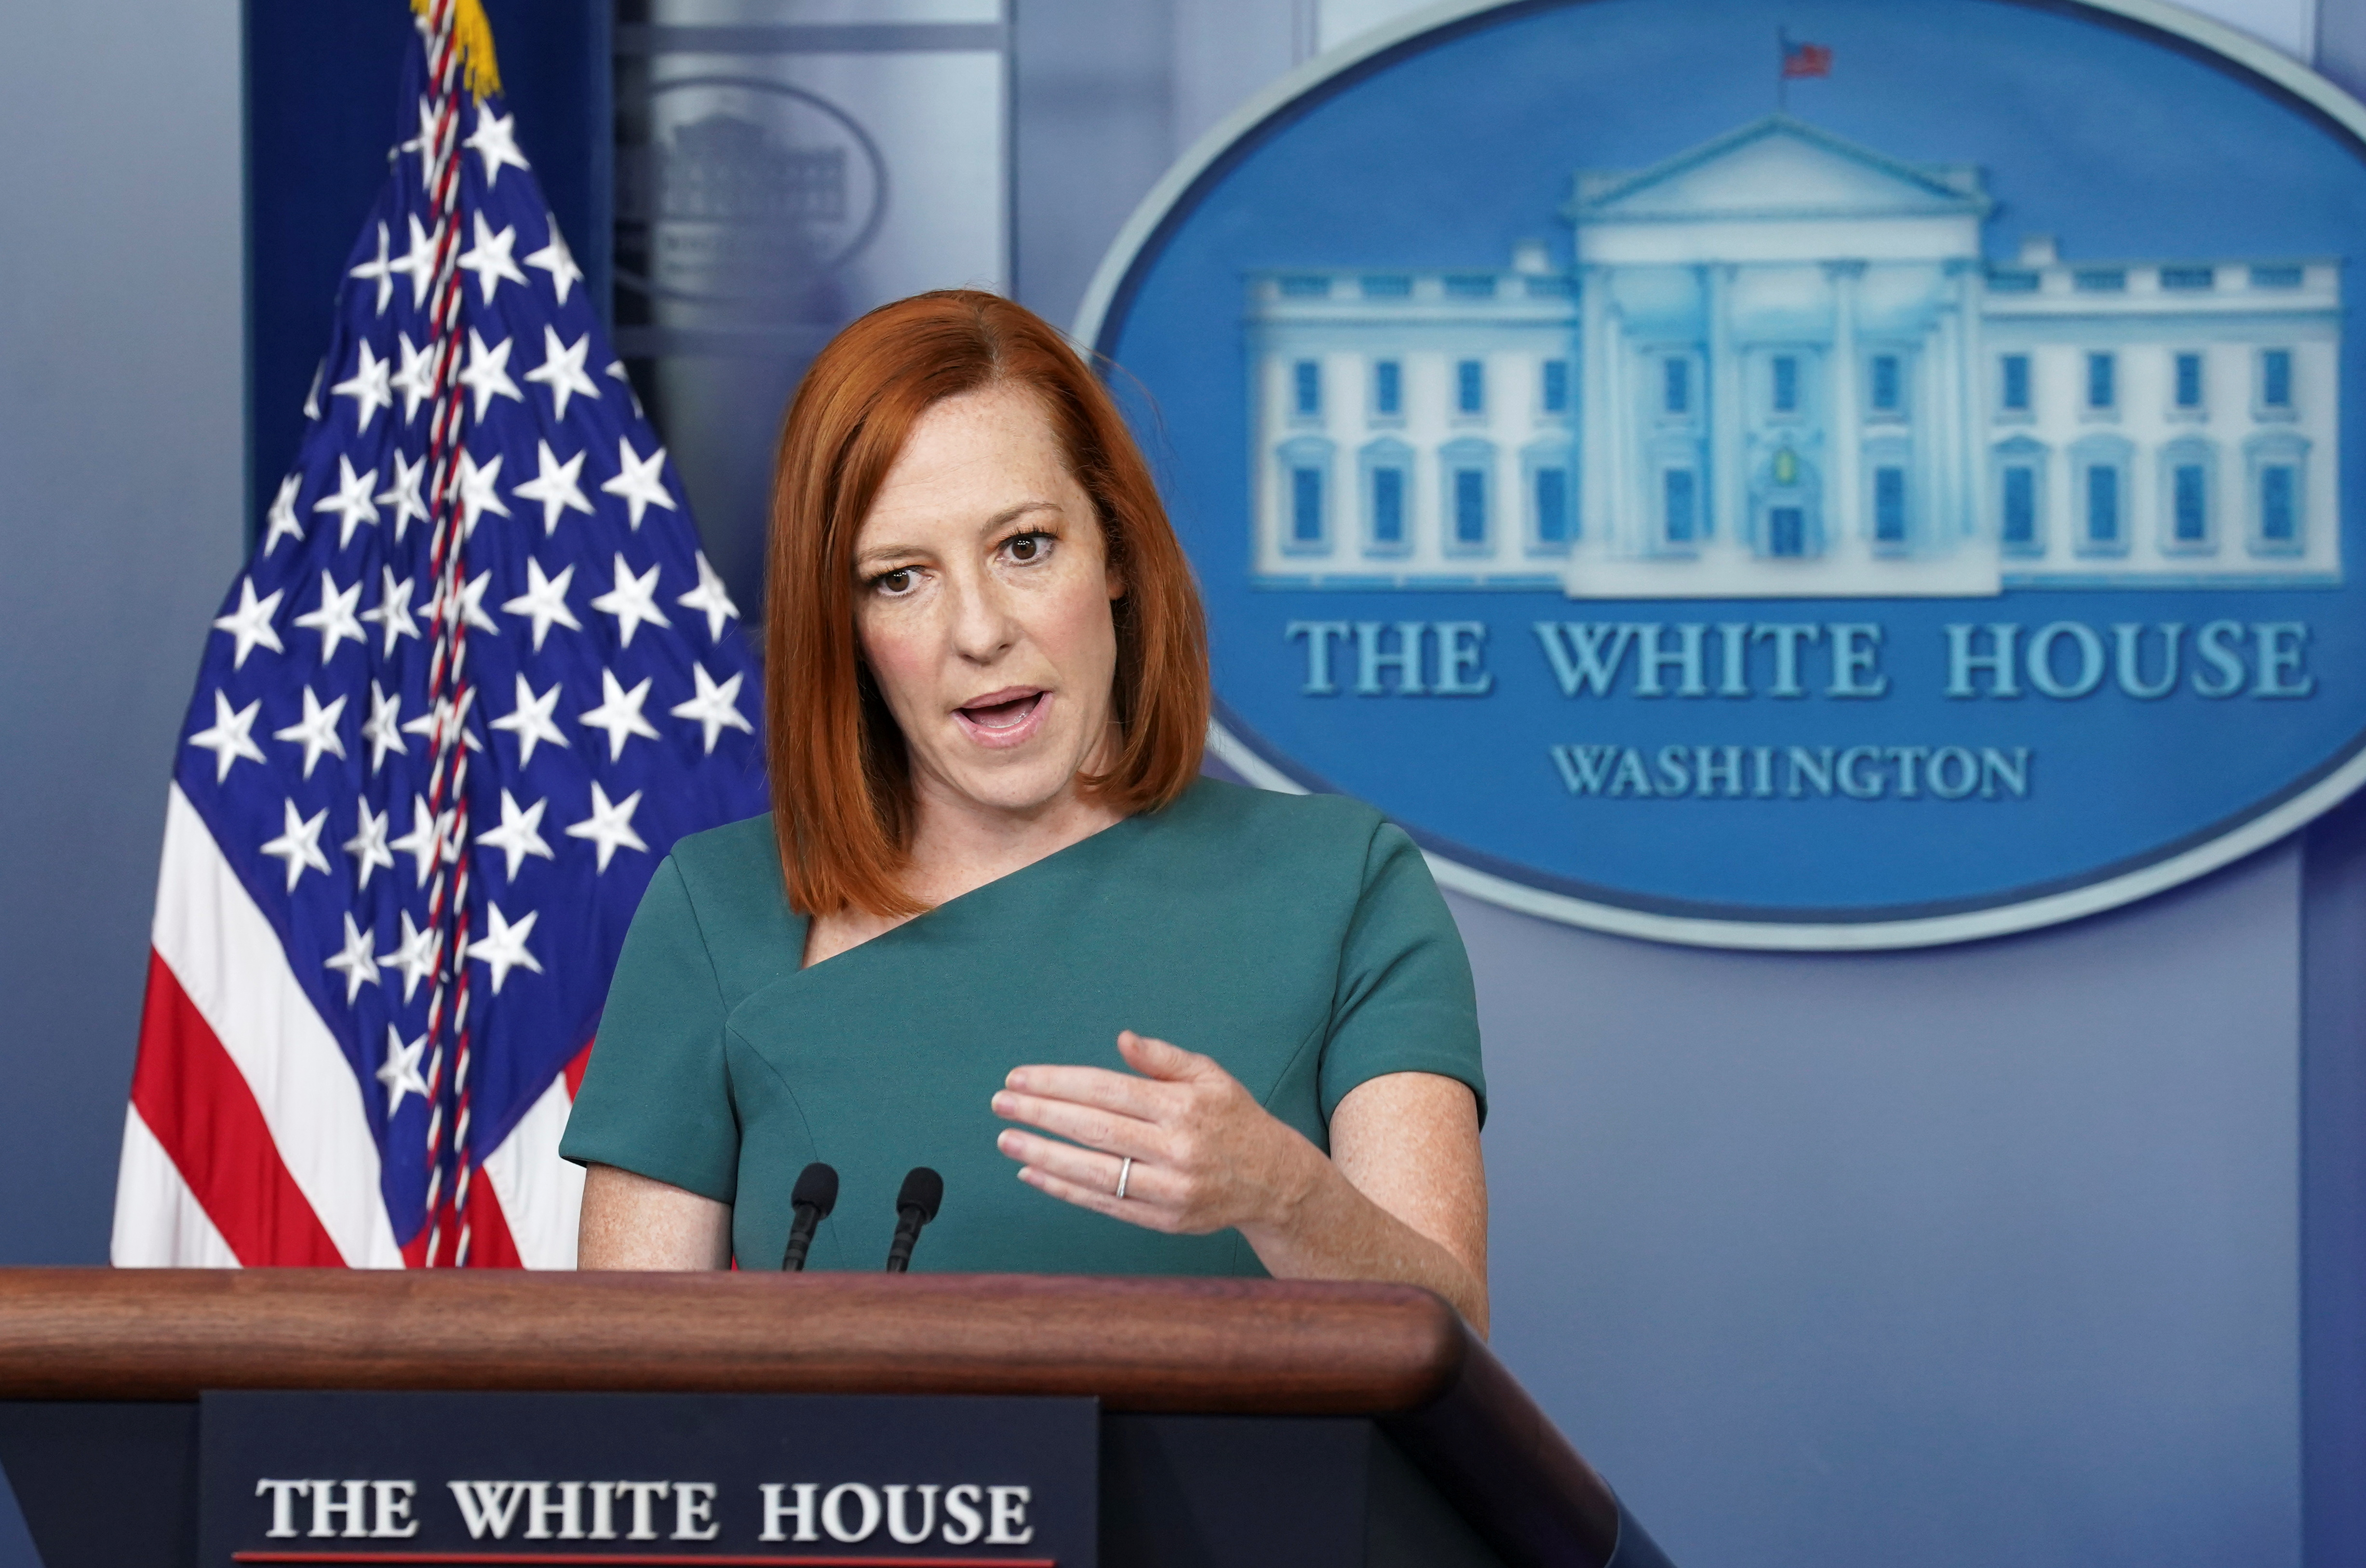 White House Press Secretary Jen Psaki speaks during a briefing at the White House in Washington, U.S., May 20, 2021. REUTERS/Kevin Lamarque